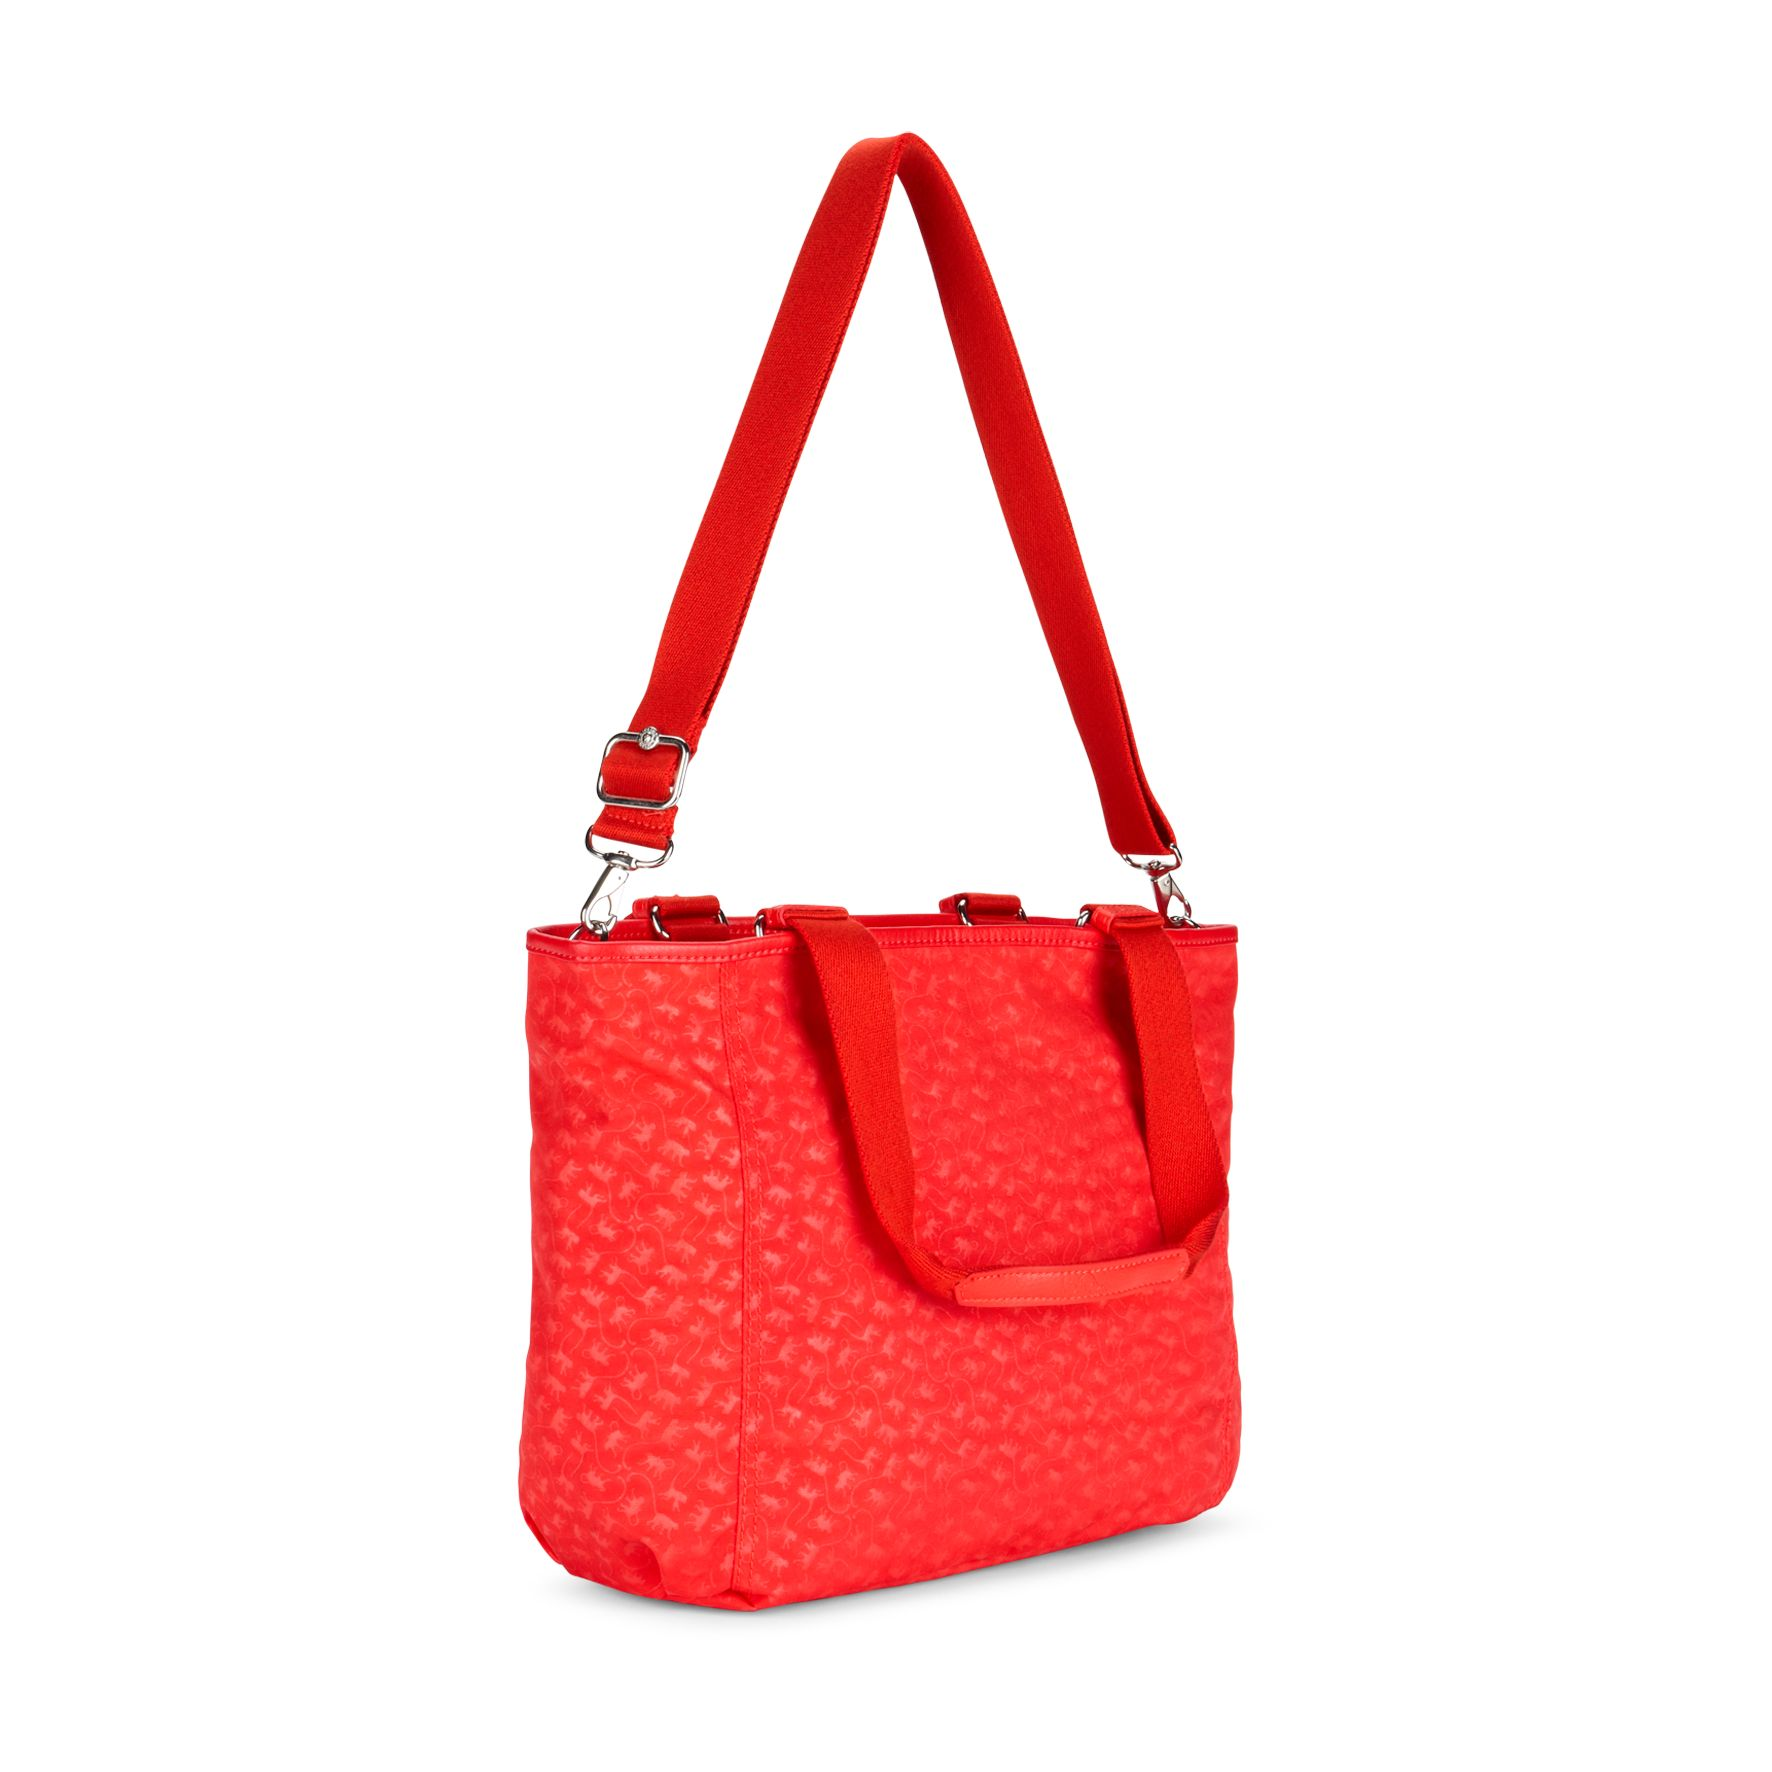 Roslin shoulder bag